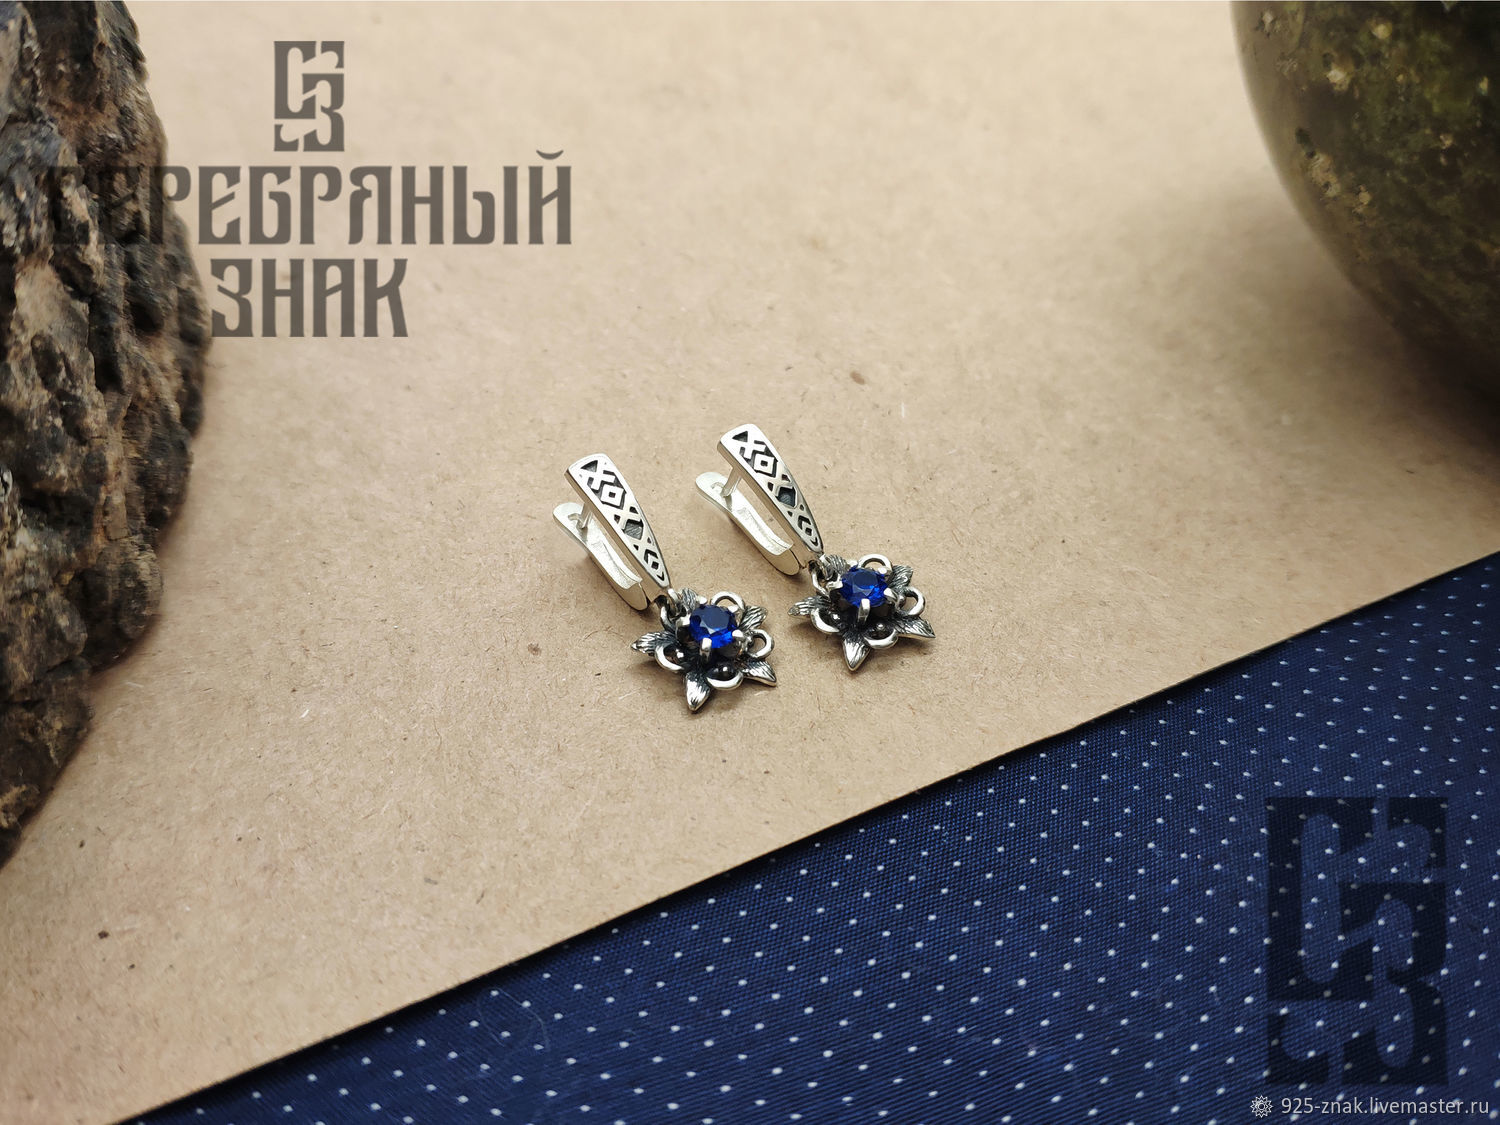 Forget-me-not earrings, blue cubic zirconia. Silver 925 art. One million eleven thousand three hundr, Earrings, St. Petersburg,  Фото №1